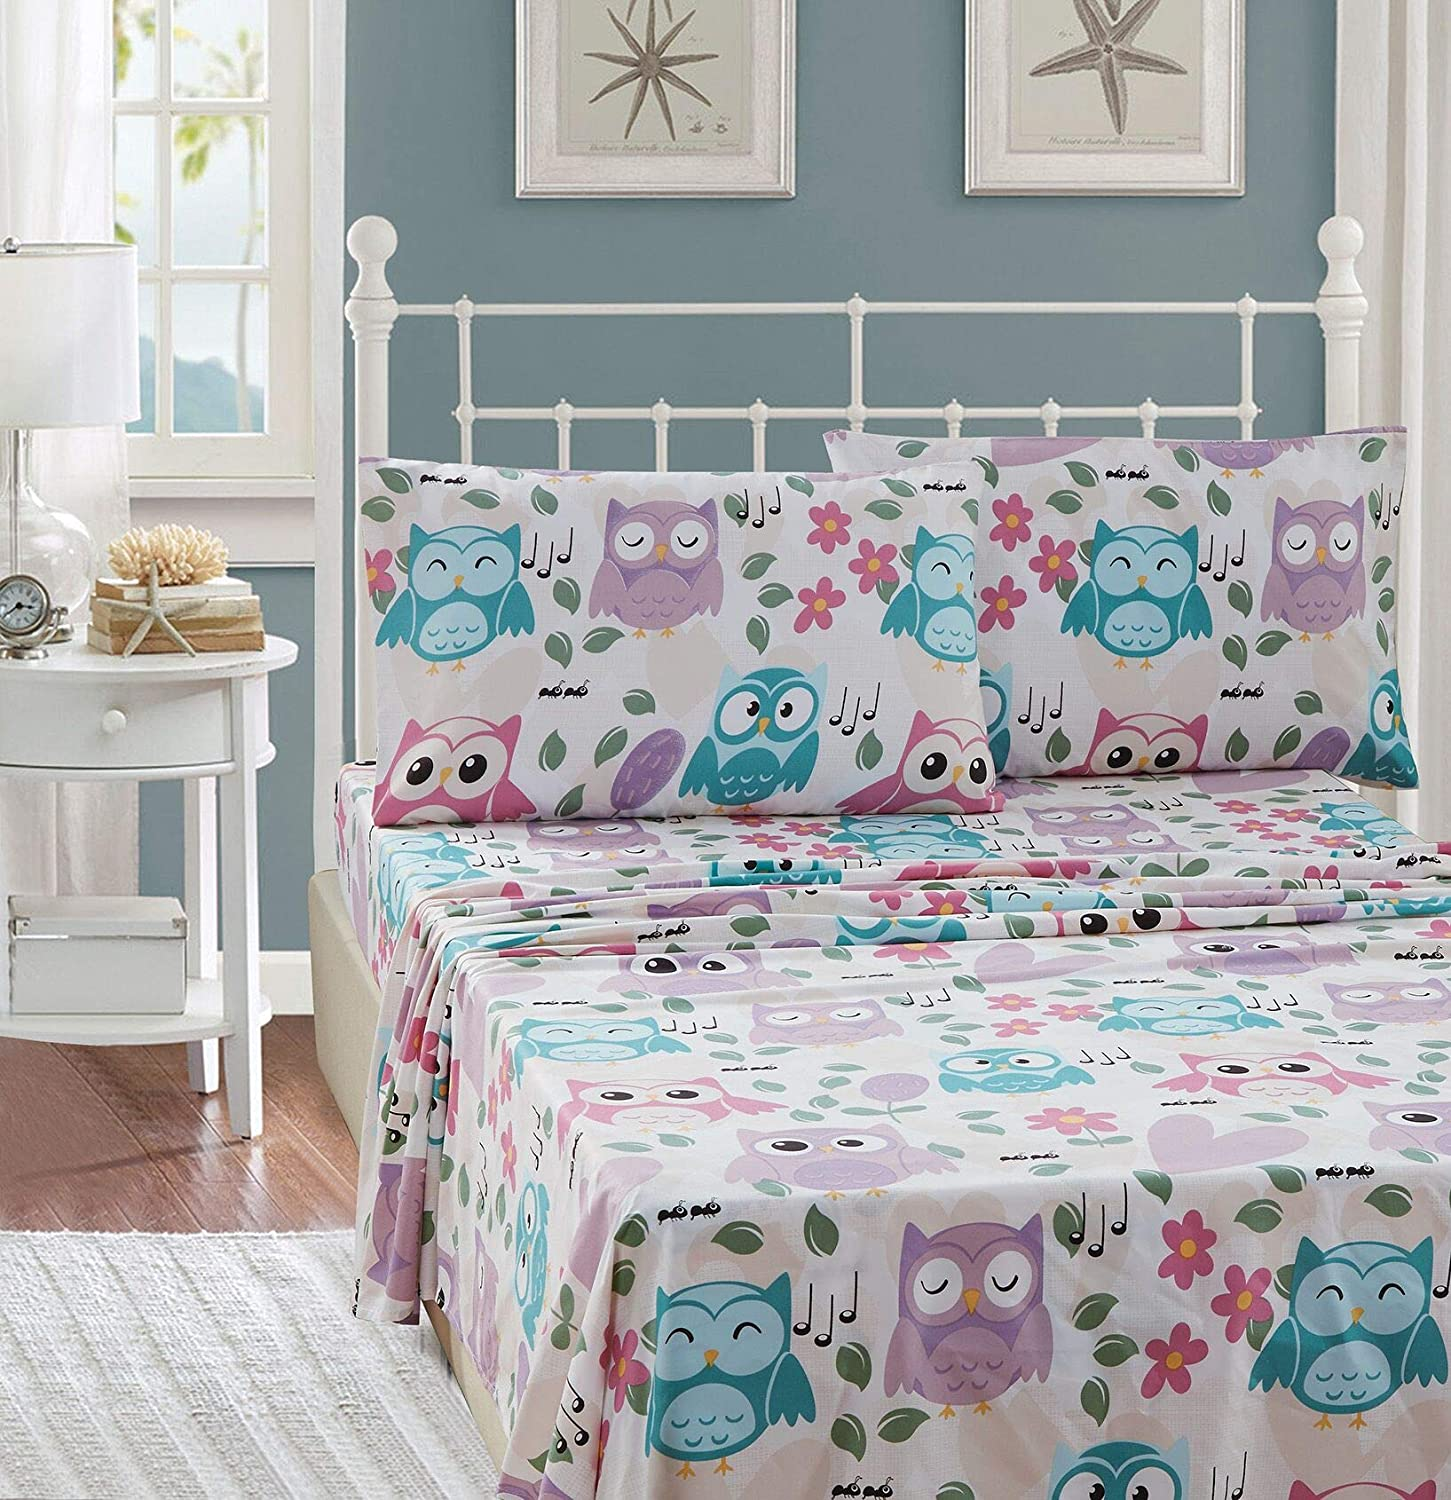 Elegant Homes Multicolor Pink White Blue Purple Cute Beautiful Girls Floral Owl with Hearts Design Fun 3 Piece Printed Sheet Set with Pillowcases Flat Fitted Sheet for Girls/Kids # EH Owl (Twin Size)